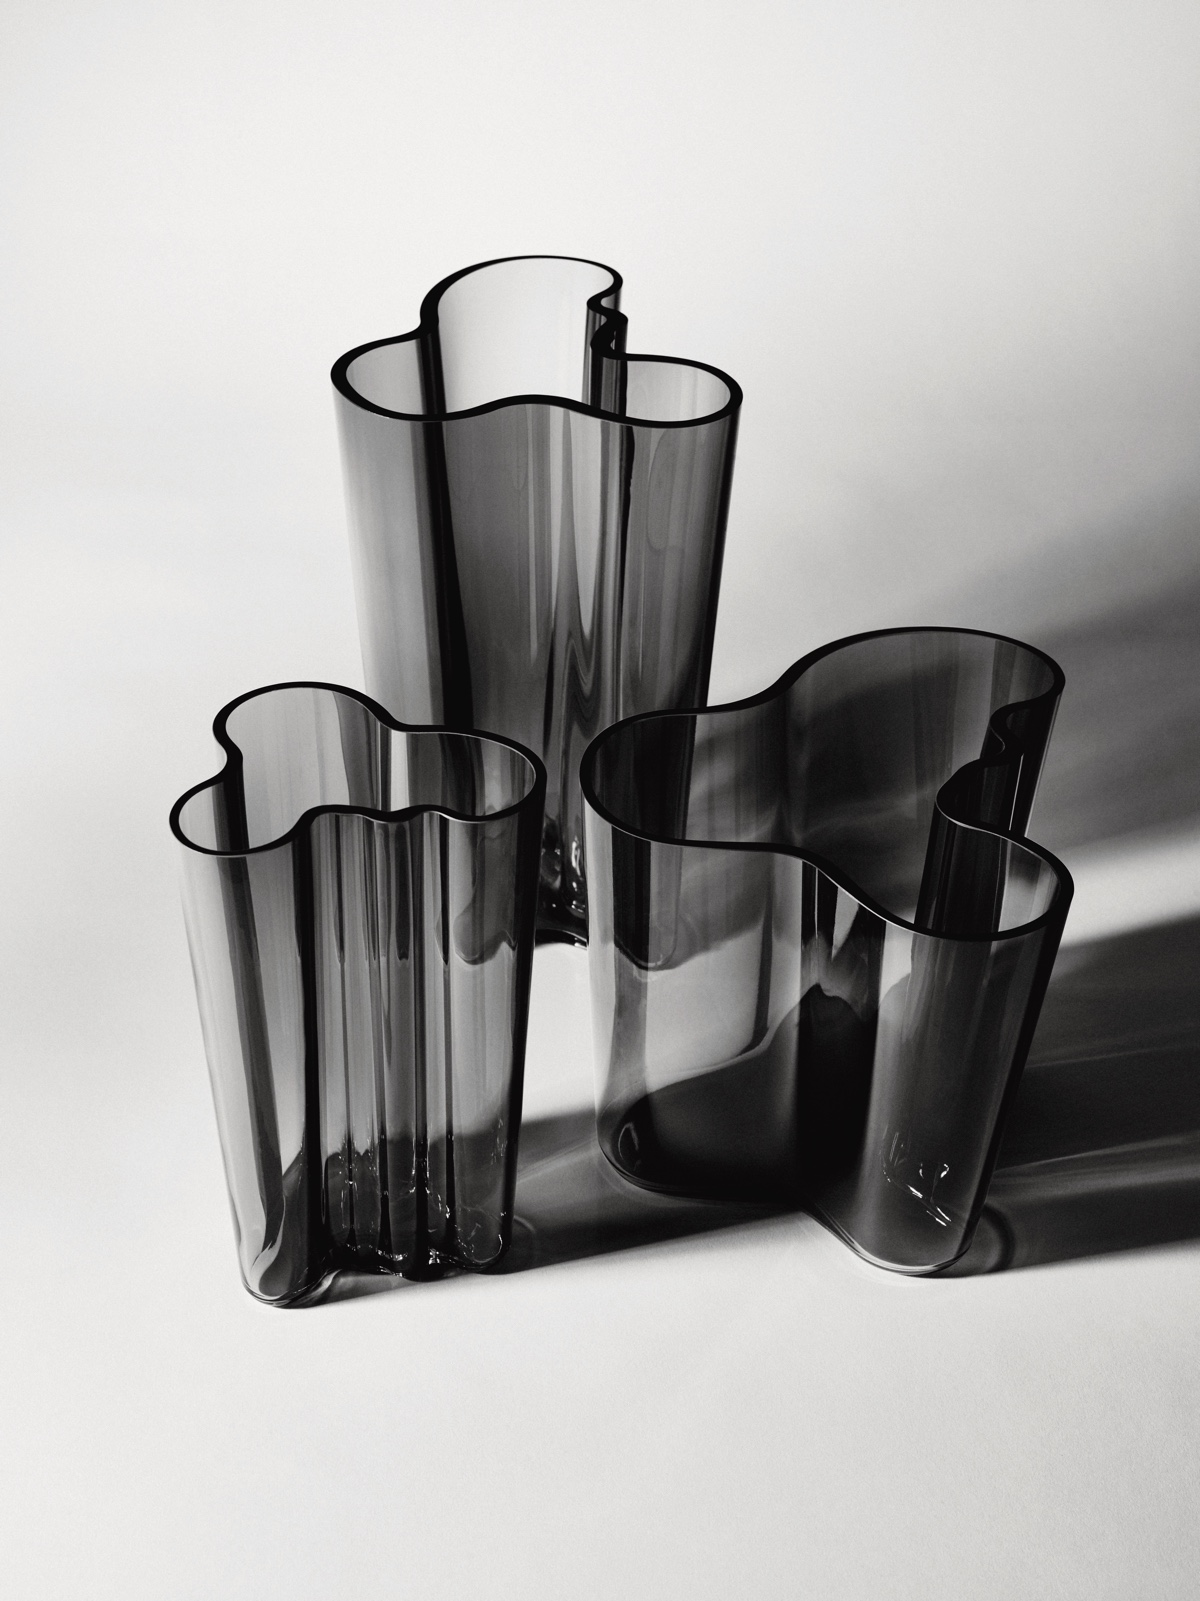 finnish design genius alvar aalto artek and the aalto vase. Black Bedroom Furniture Sets. Home Design Ideas